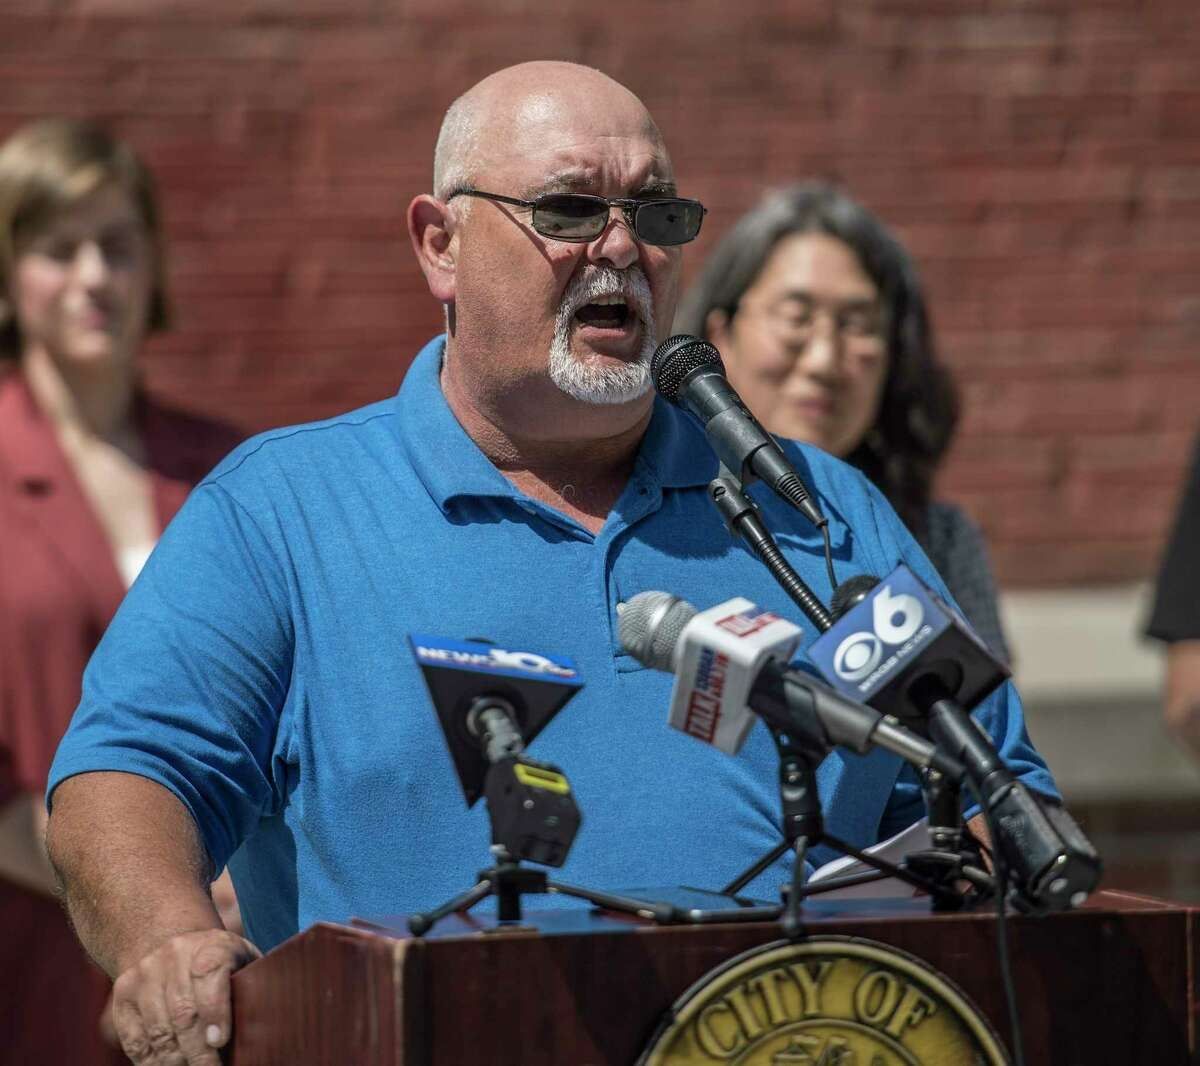 Jim Gulli speaks to the media gathered about the Powers Park Concert series that will be held during summer months at a press briefing Monday May 29, 2018 in Troy, N.Y. (Skip Dickstein/Times Union)